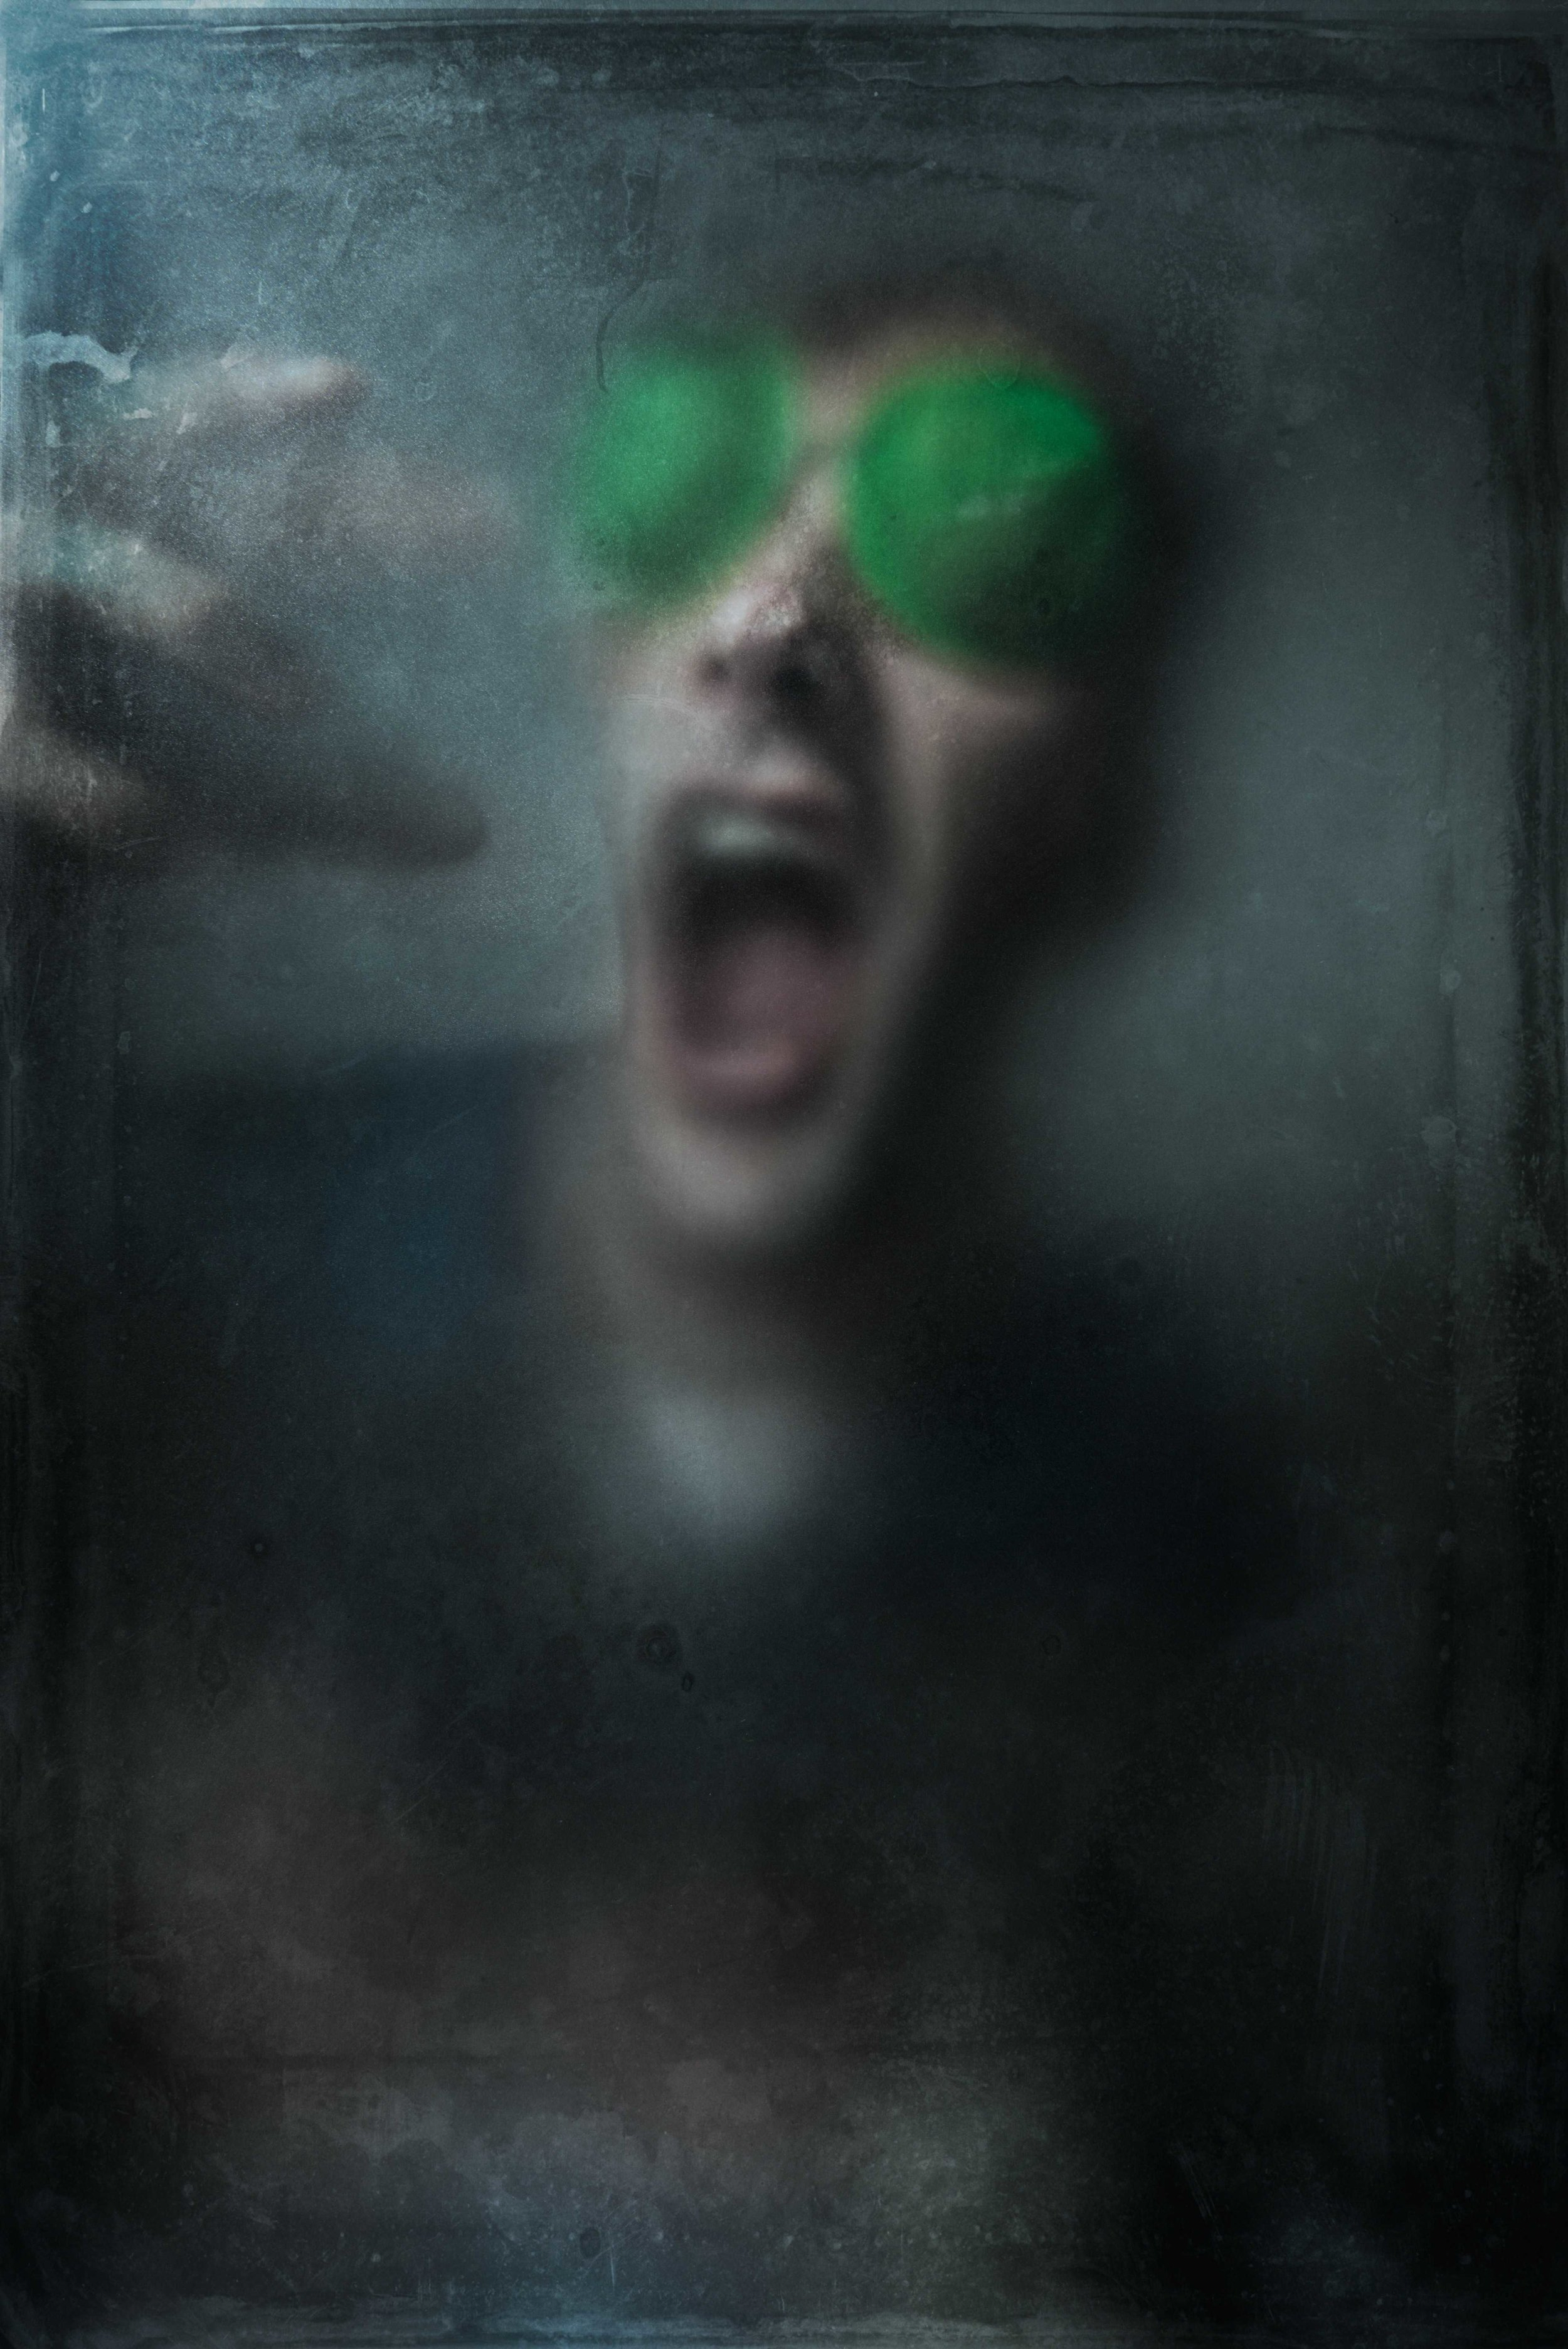 austin-trigg-halloween-spooky-portraits-bug-eyed-man-lighting-project-personal-scary-makeup-costume-old-fashion-style-fog-glass.jpg